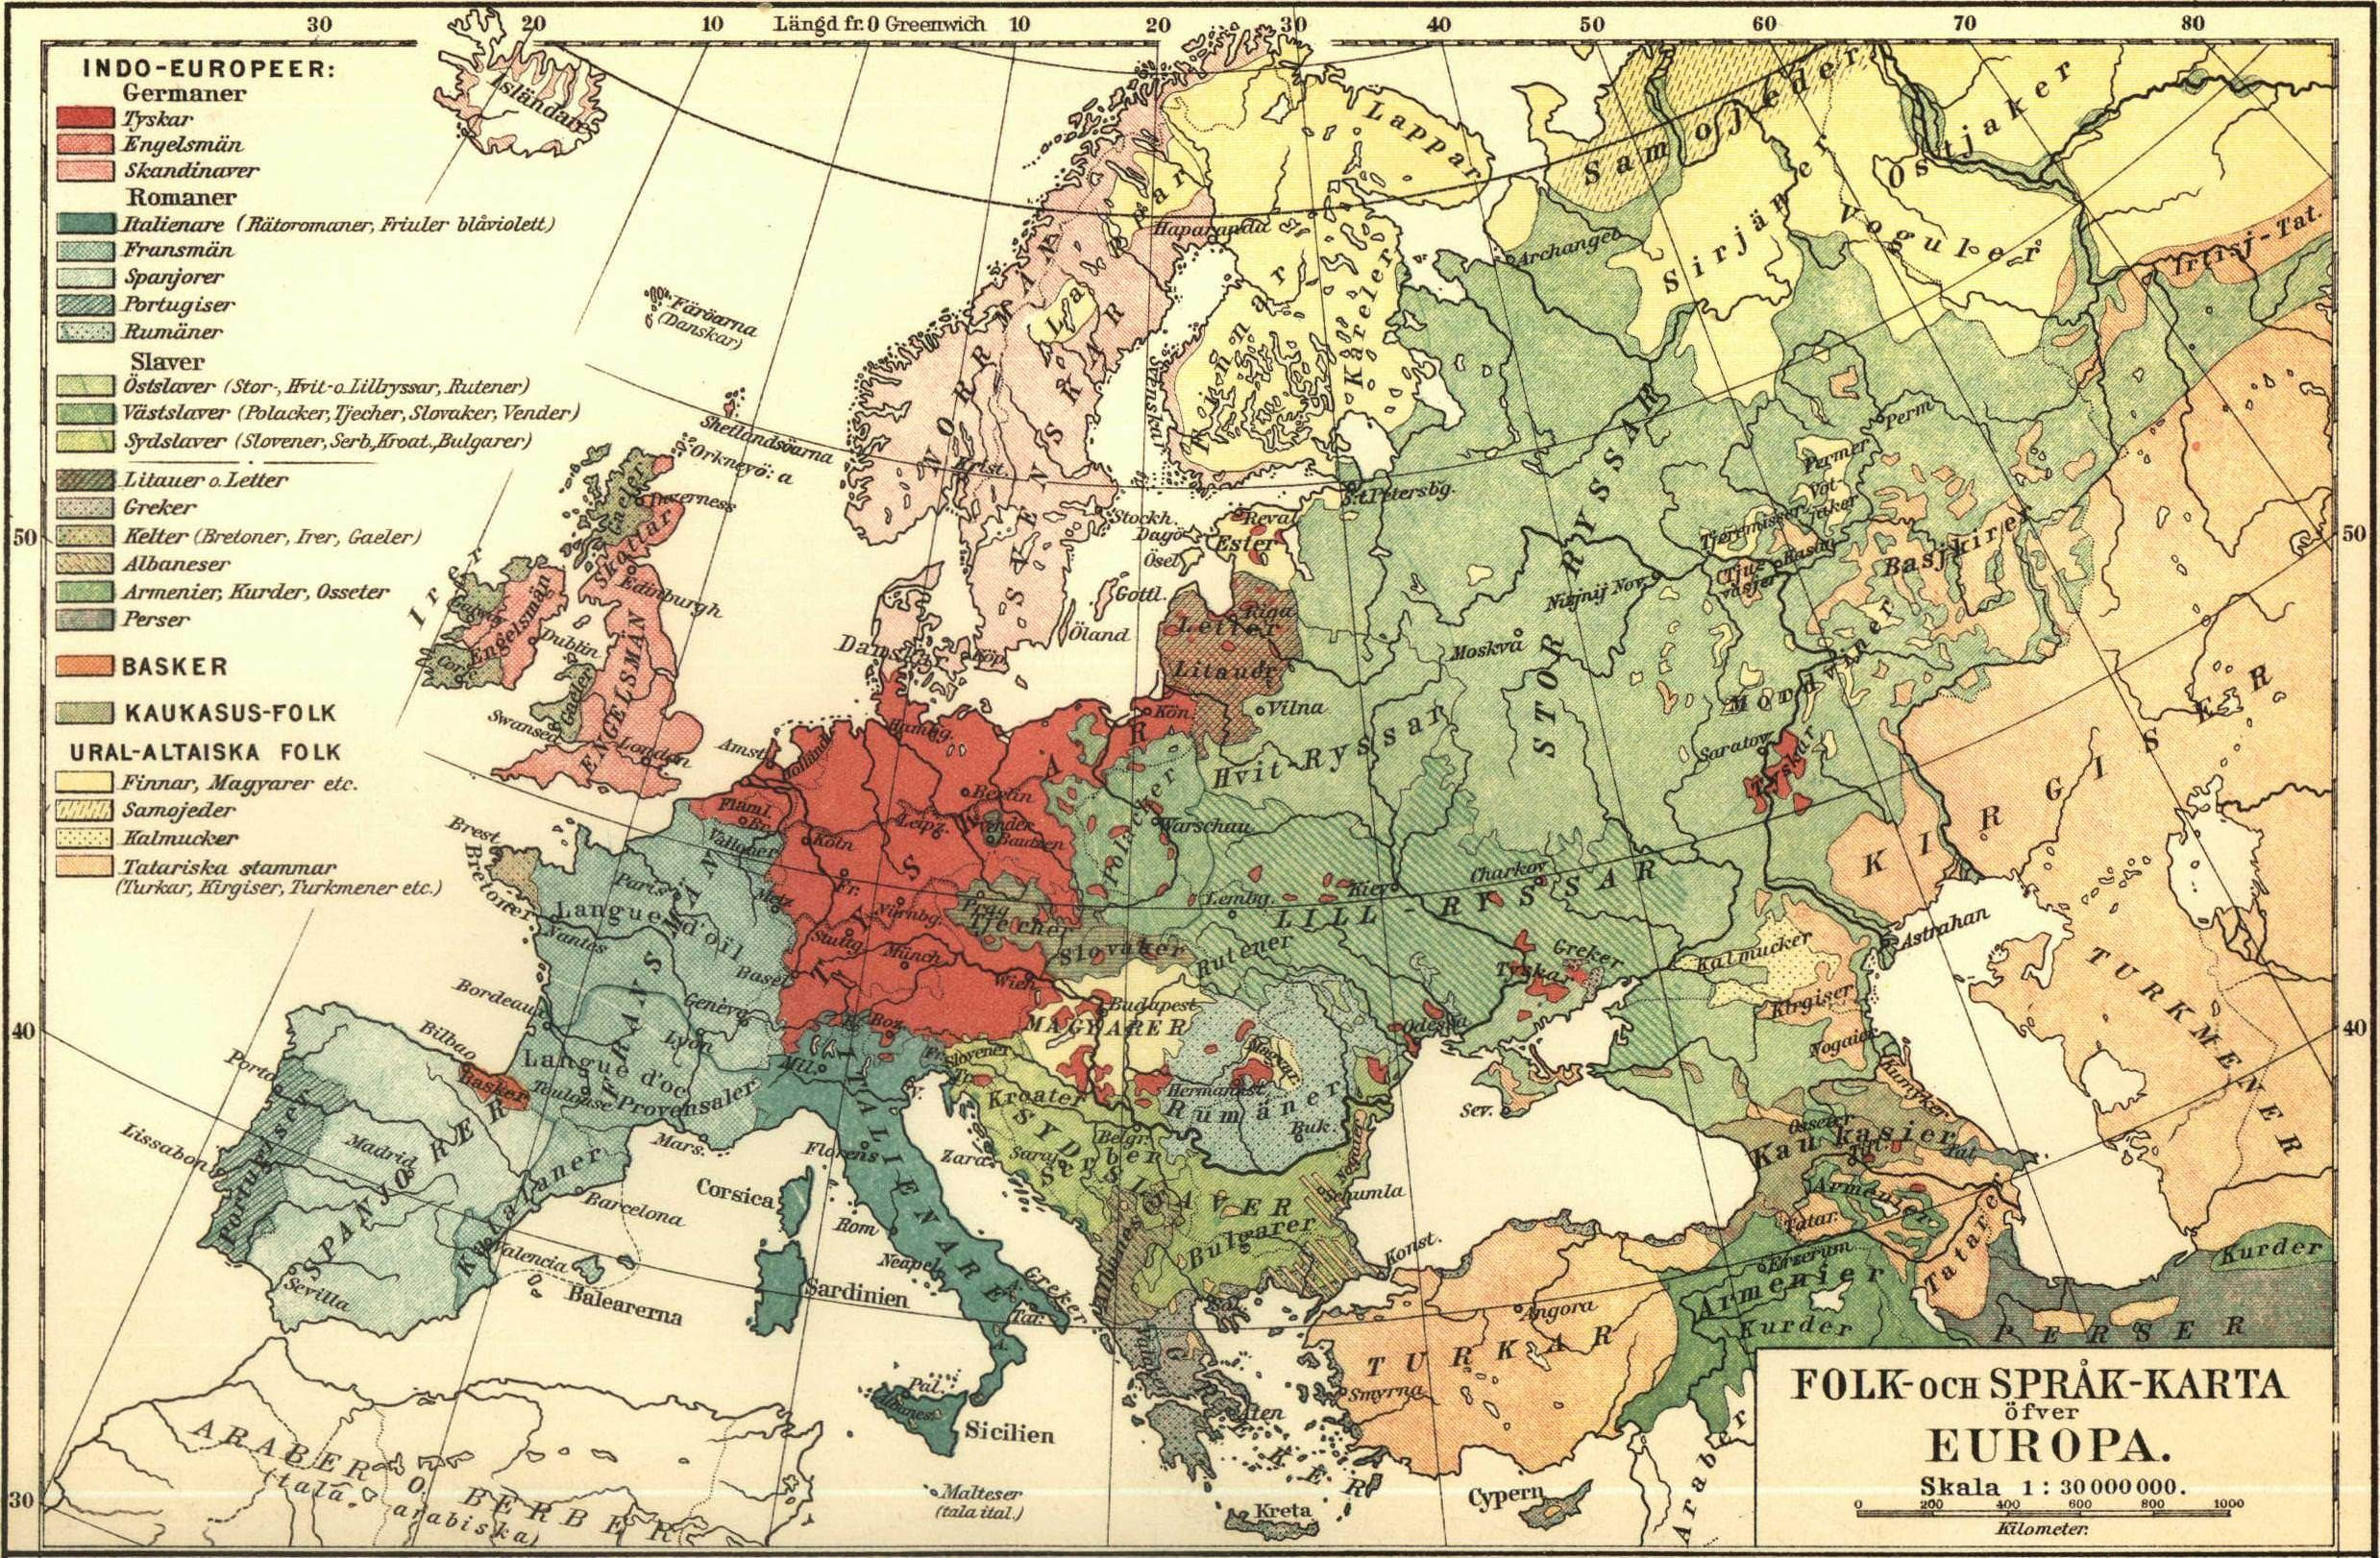 Swedish ethnic and language map of Europe (1907) | mapmania ... on aboriginal australian languages map, ethnic group map, world language families map, european language map,